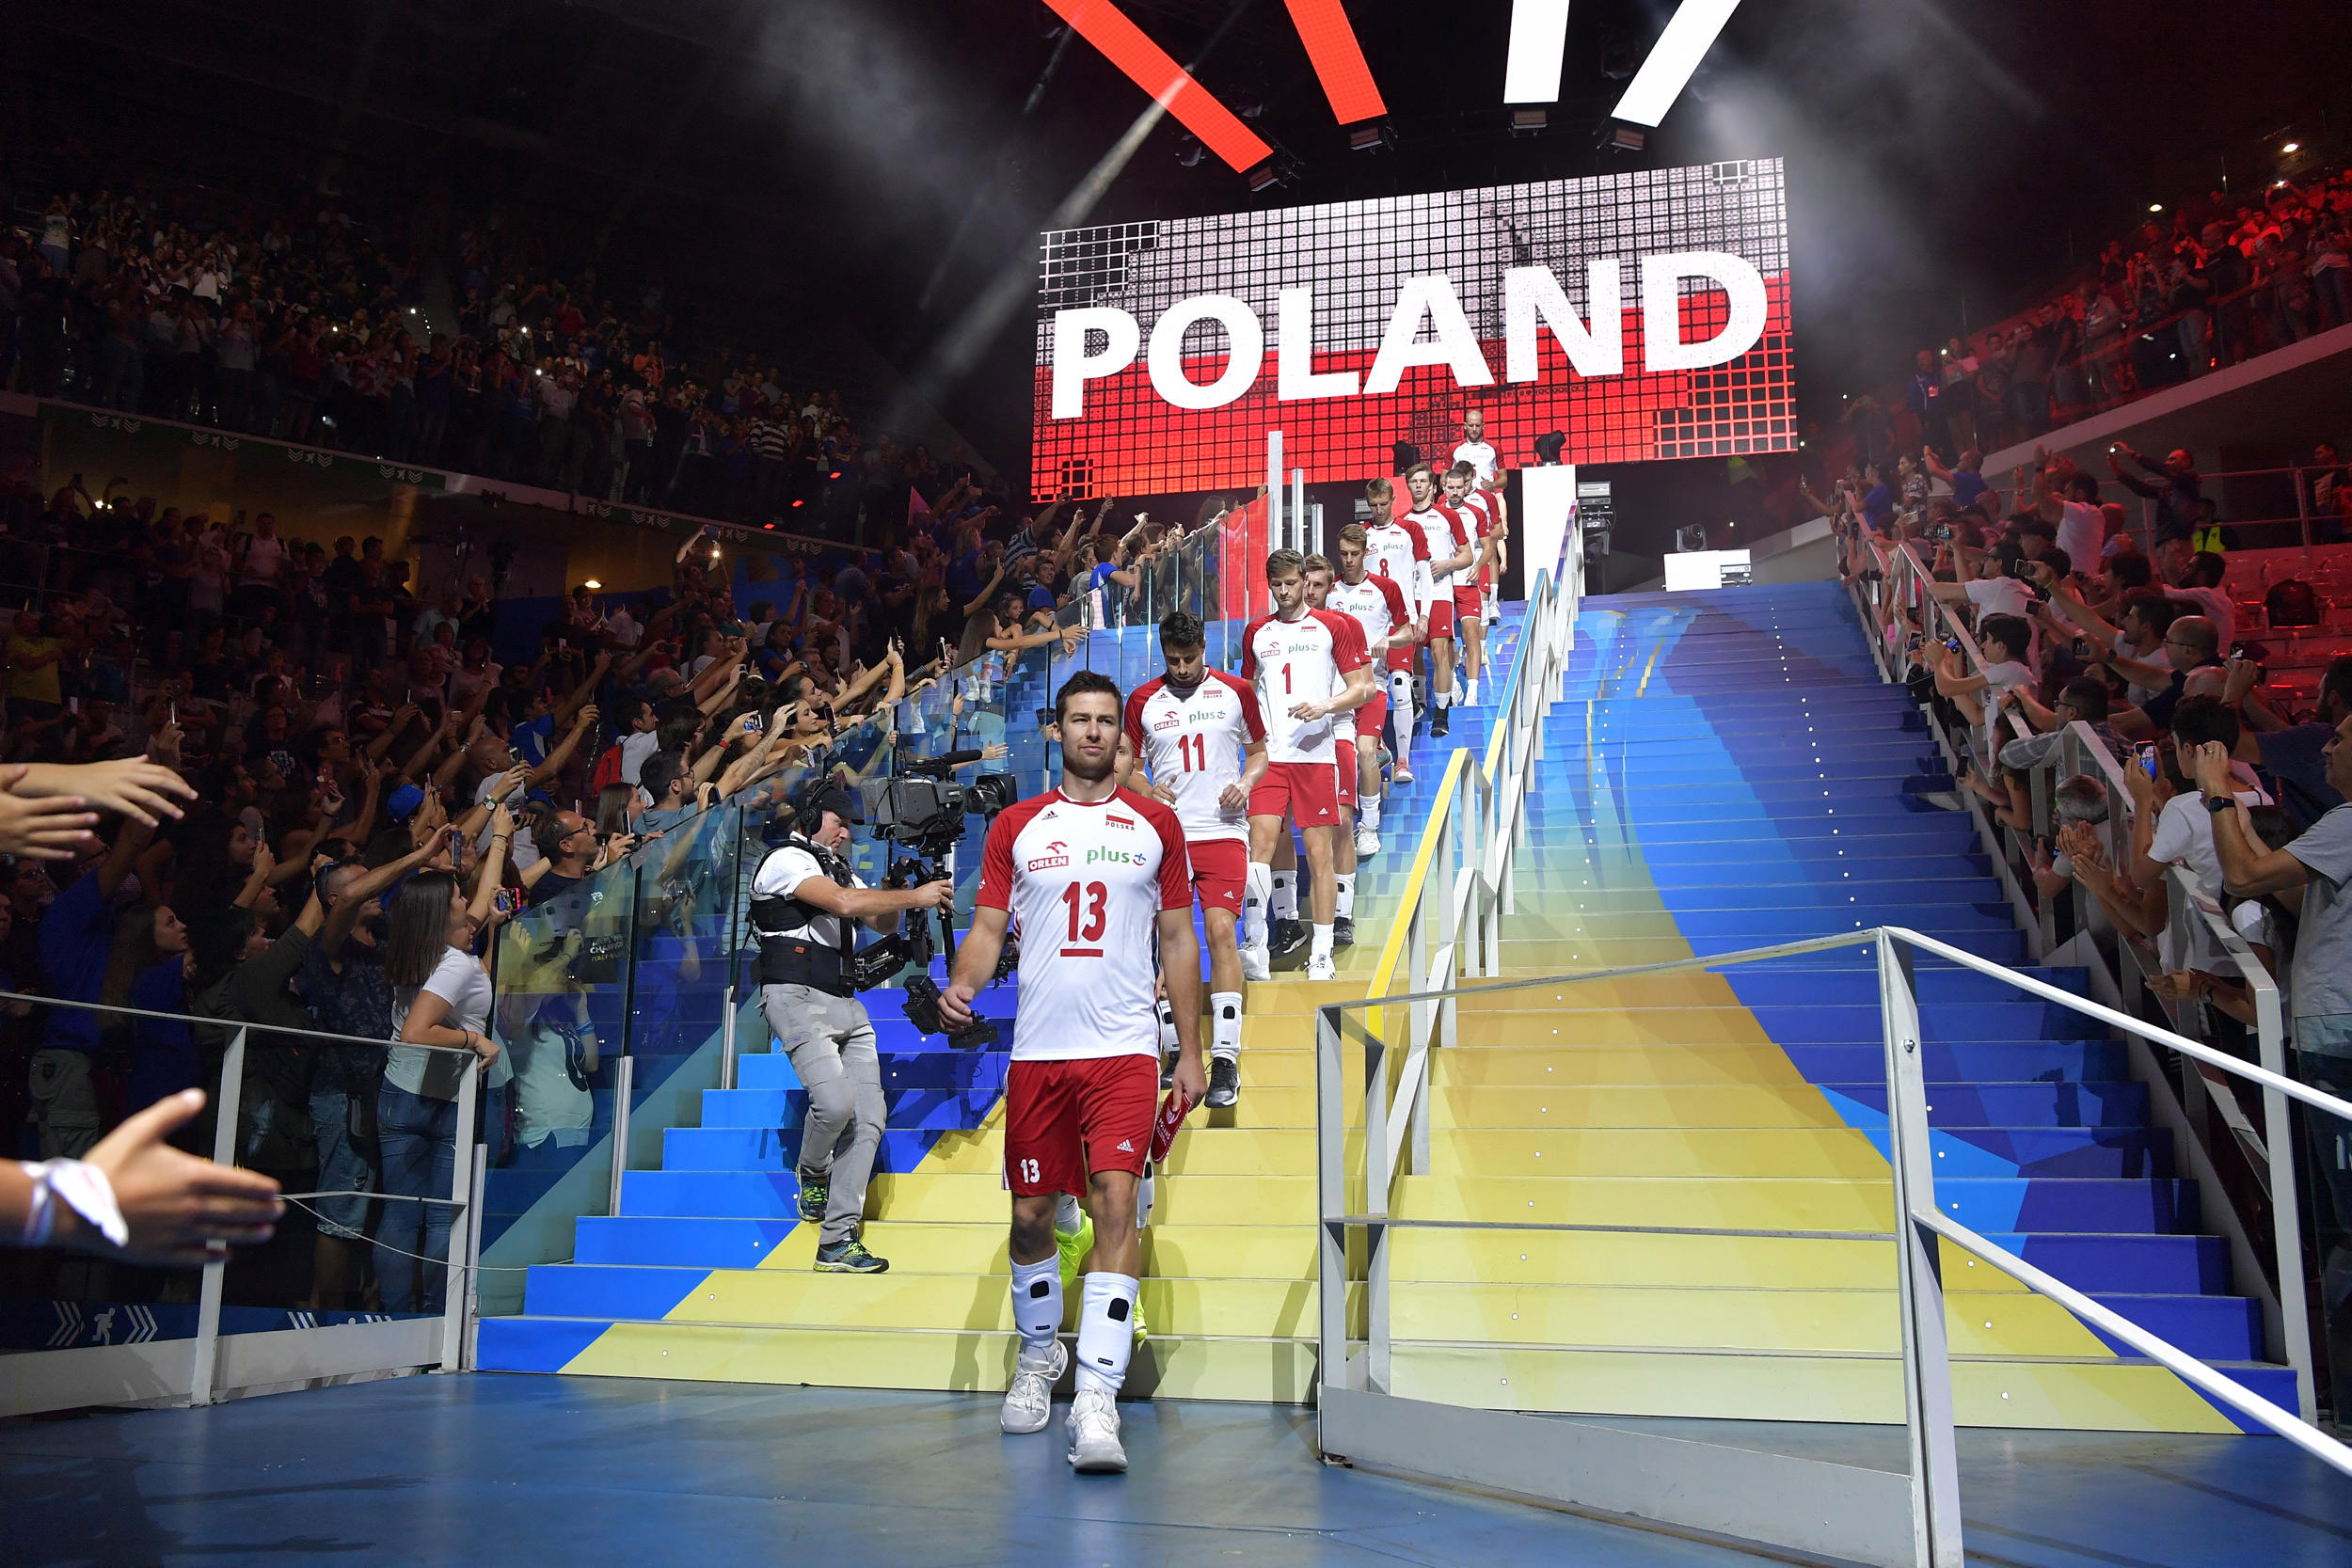 Poland And Brazil Are Set For A Replay Of The 2014 World Championship Final Which Was Won By 3 1 18 25 22 23